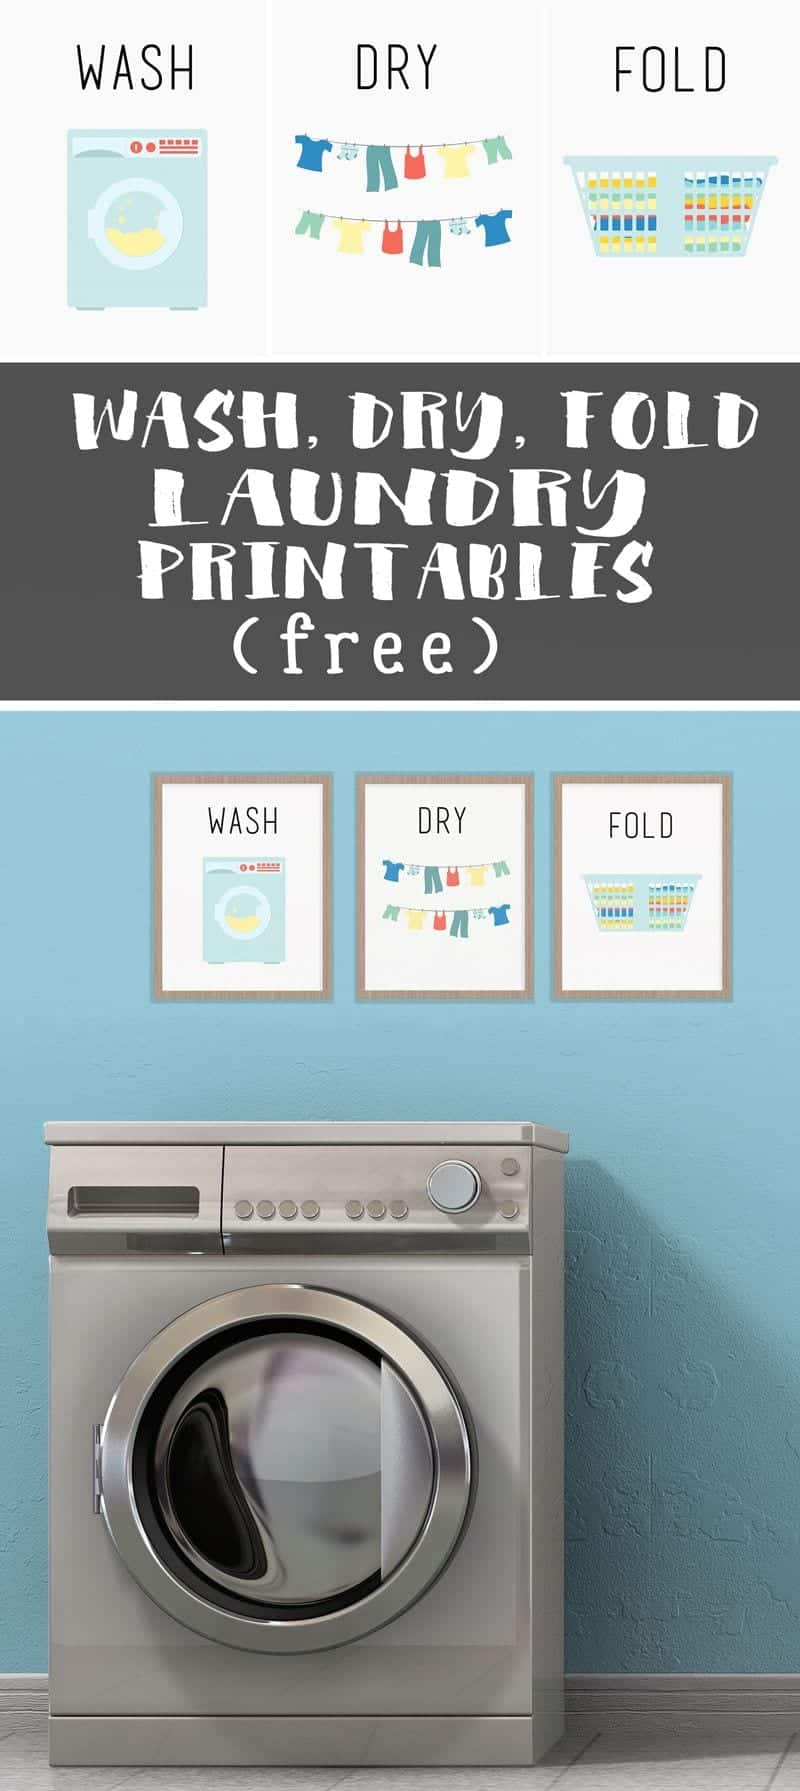 Help jump-start a new laundry routine by dressing up your laundry room decor with a free printable! Put these adorable WASH DRY FOLD printables in a frame and hang them in the laundry room. #freeprintable #laundryroom